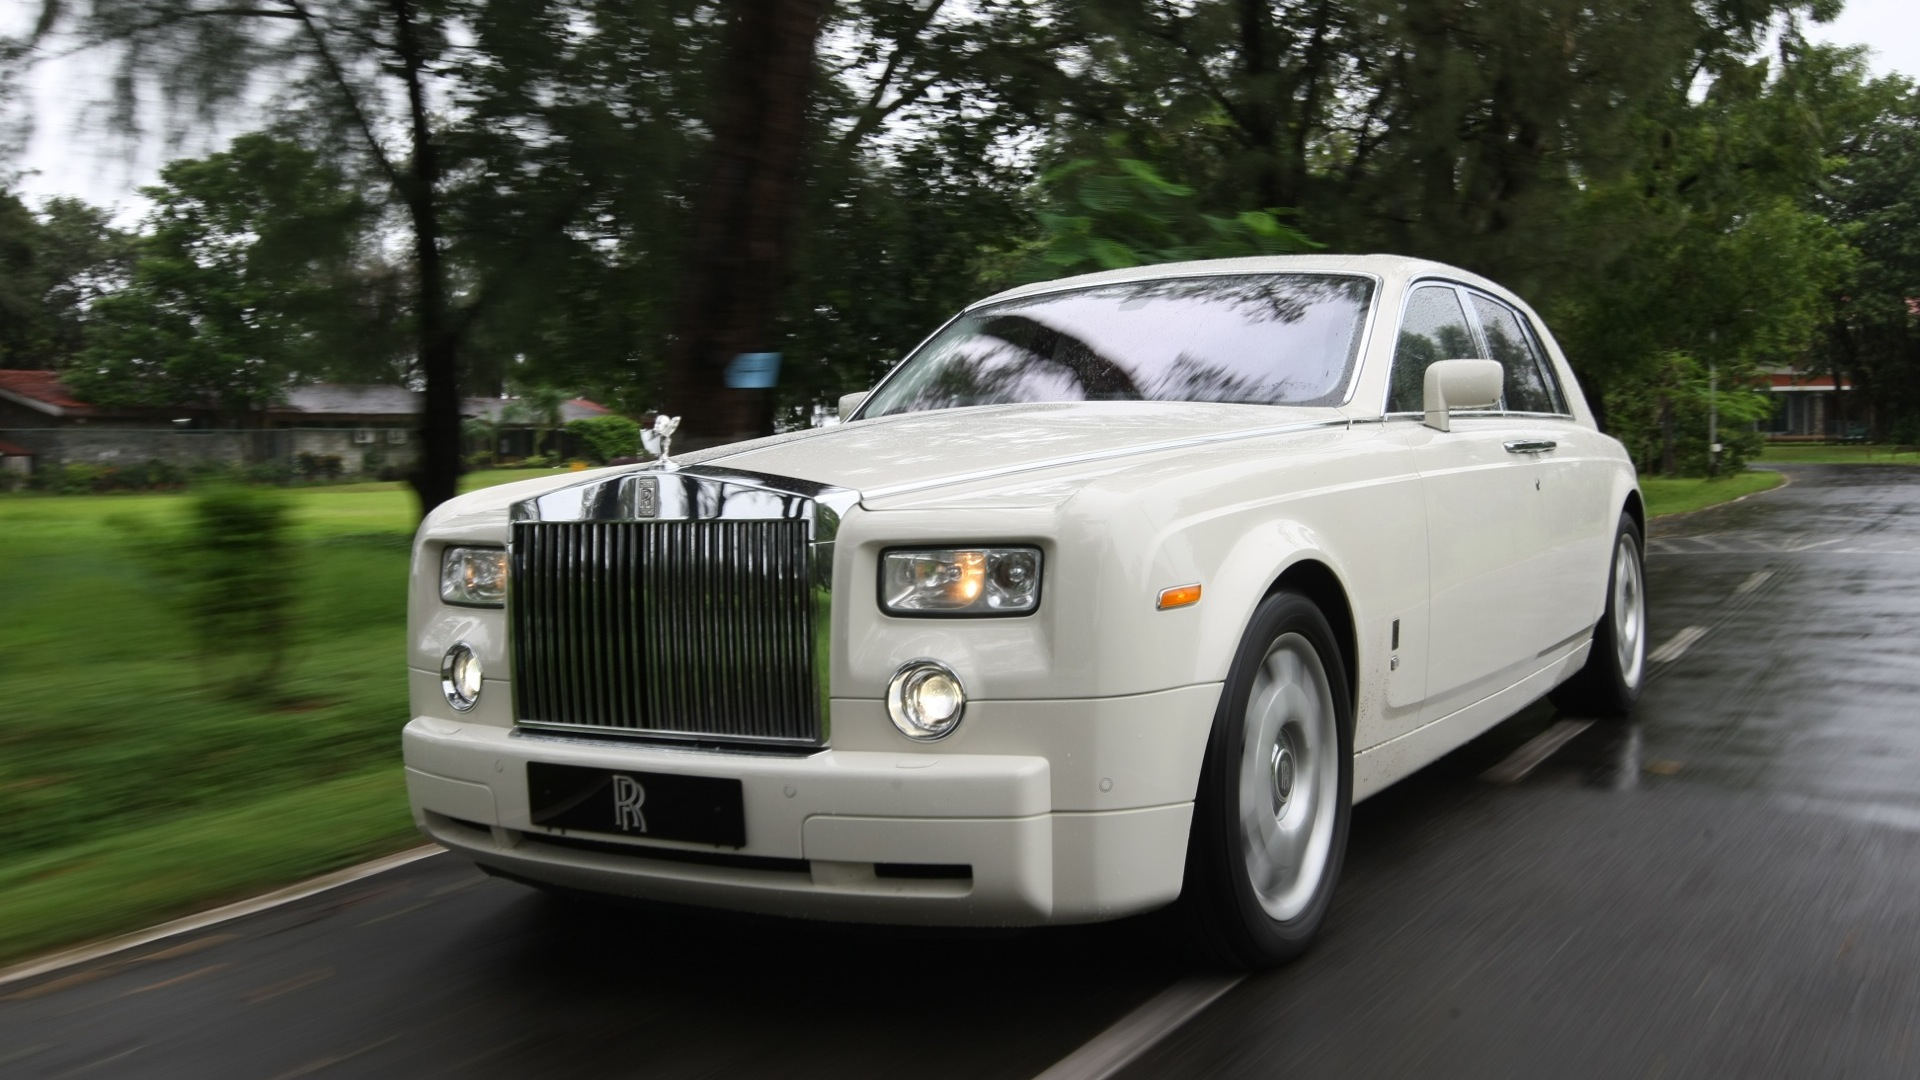 rolls royce phantom 2015 price mileage reviews specification gallery overdrive. Black Bedroom Furniture Sets. Home Design Ideas